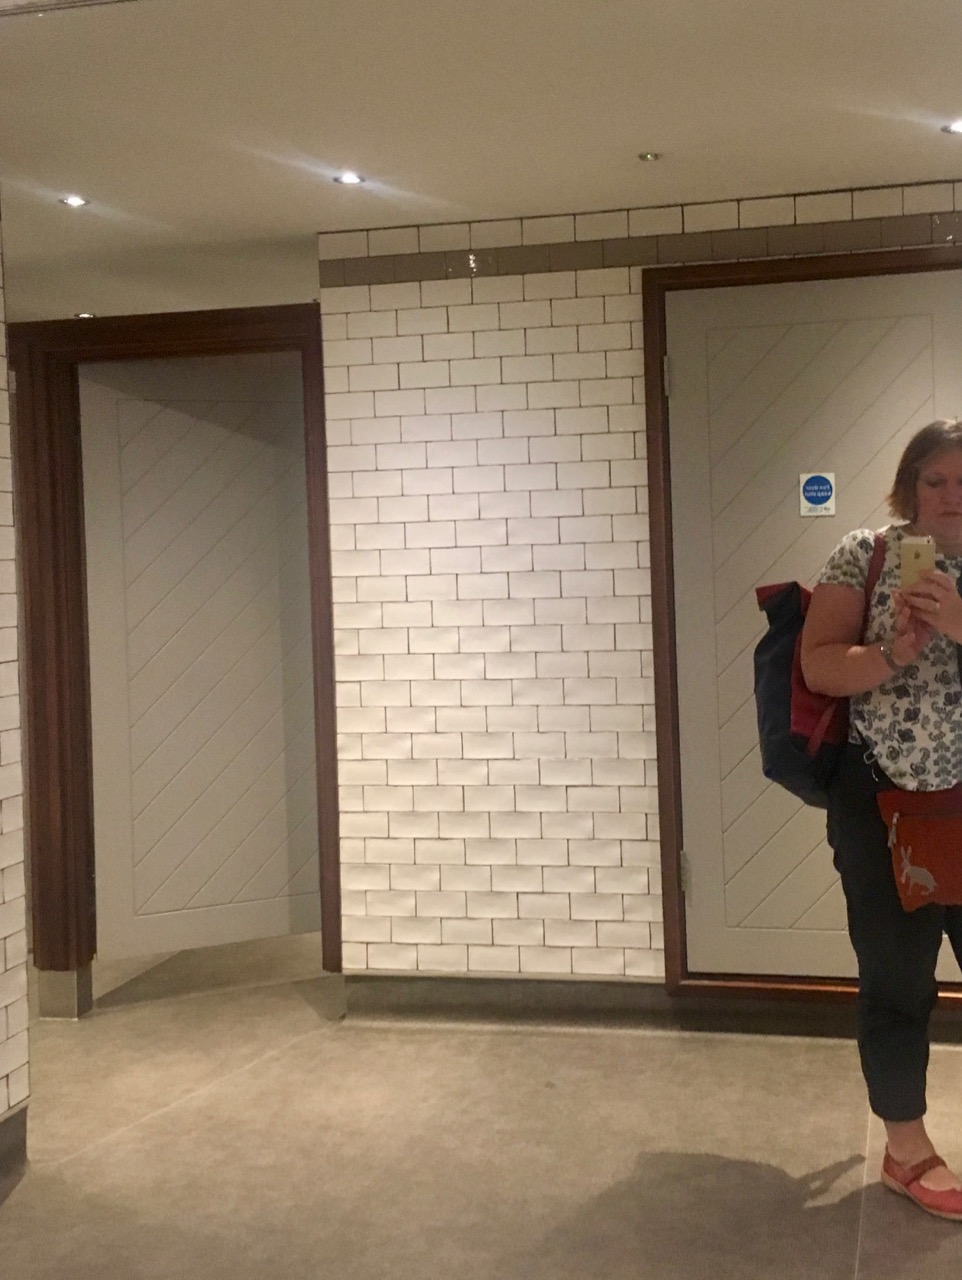 there were more loos and a giant mirror